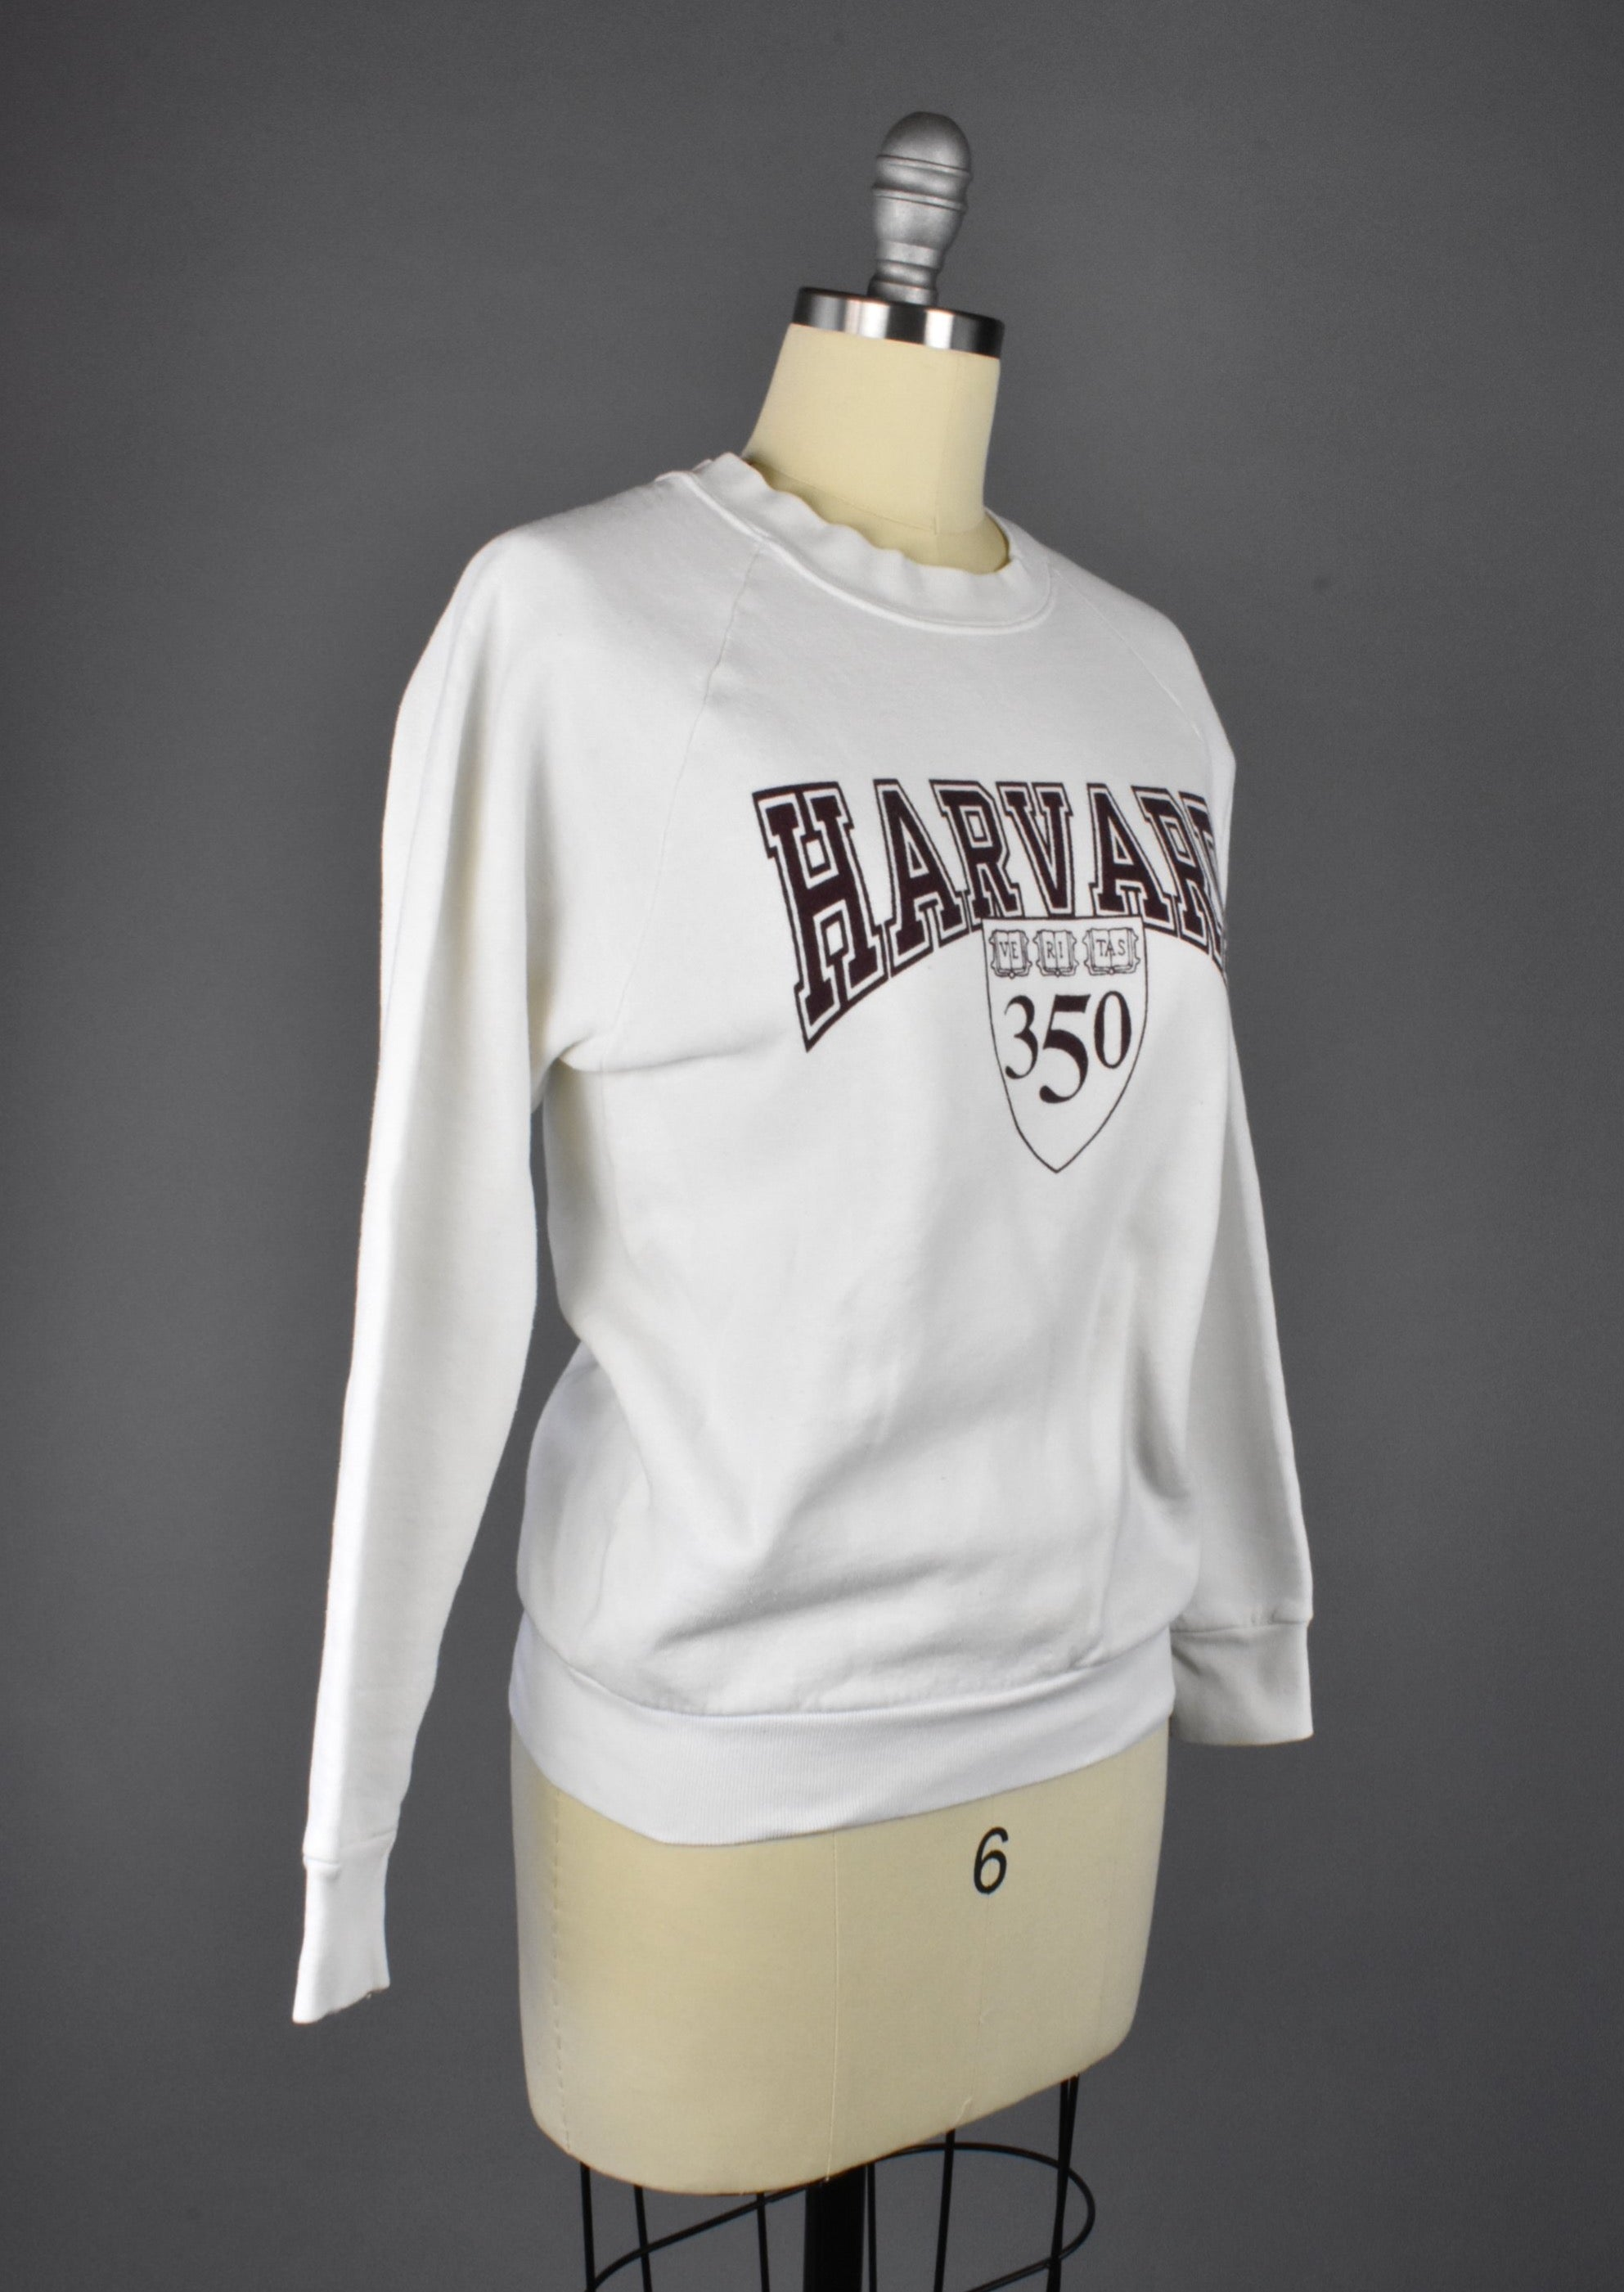 Vintage Harvard Sweatshirt by Champion